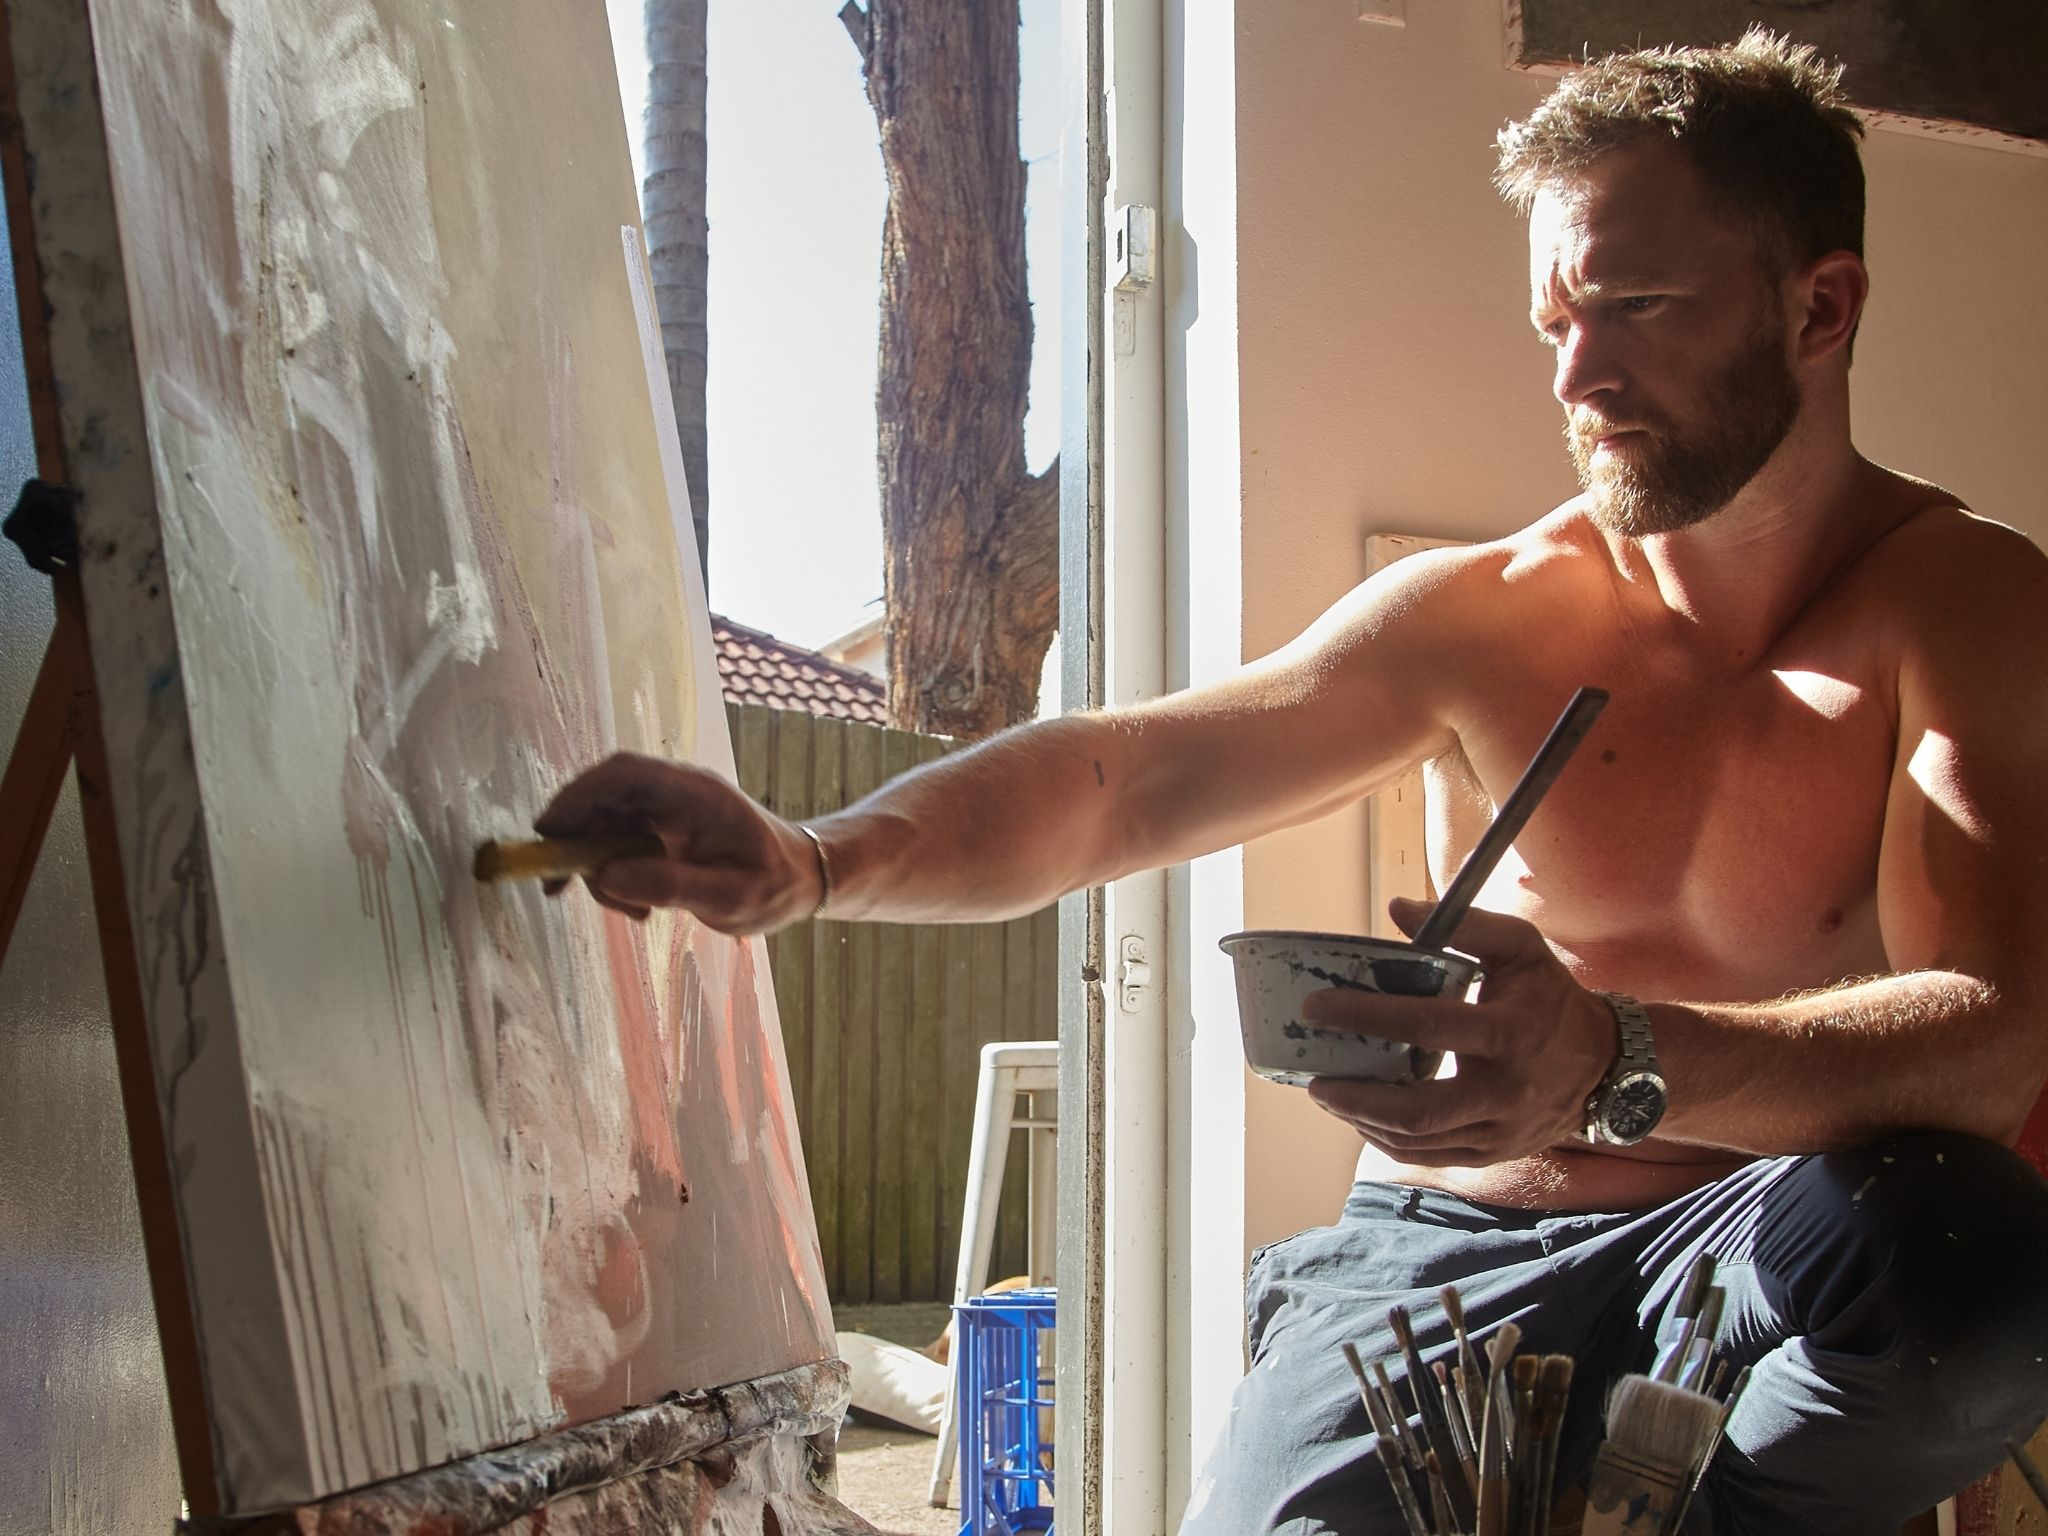 Actor Tim Draxl sitting at an easel painting, bare chested